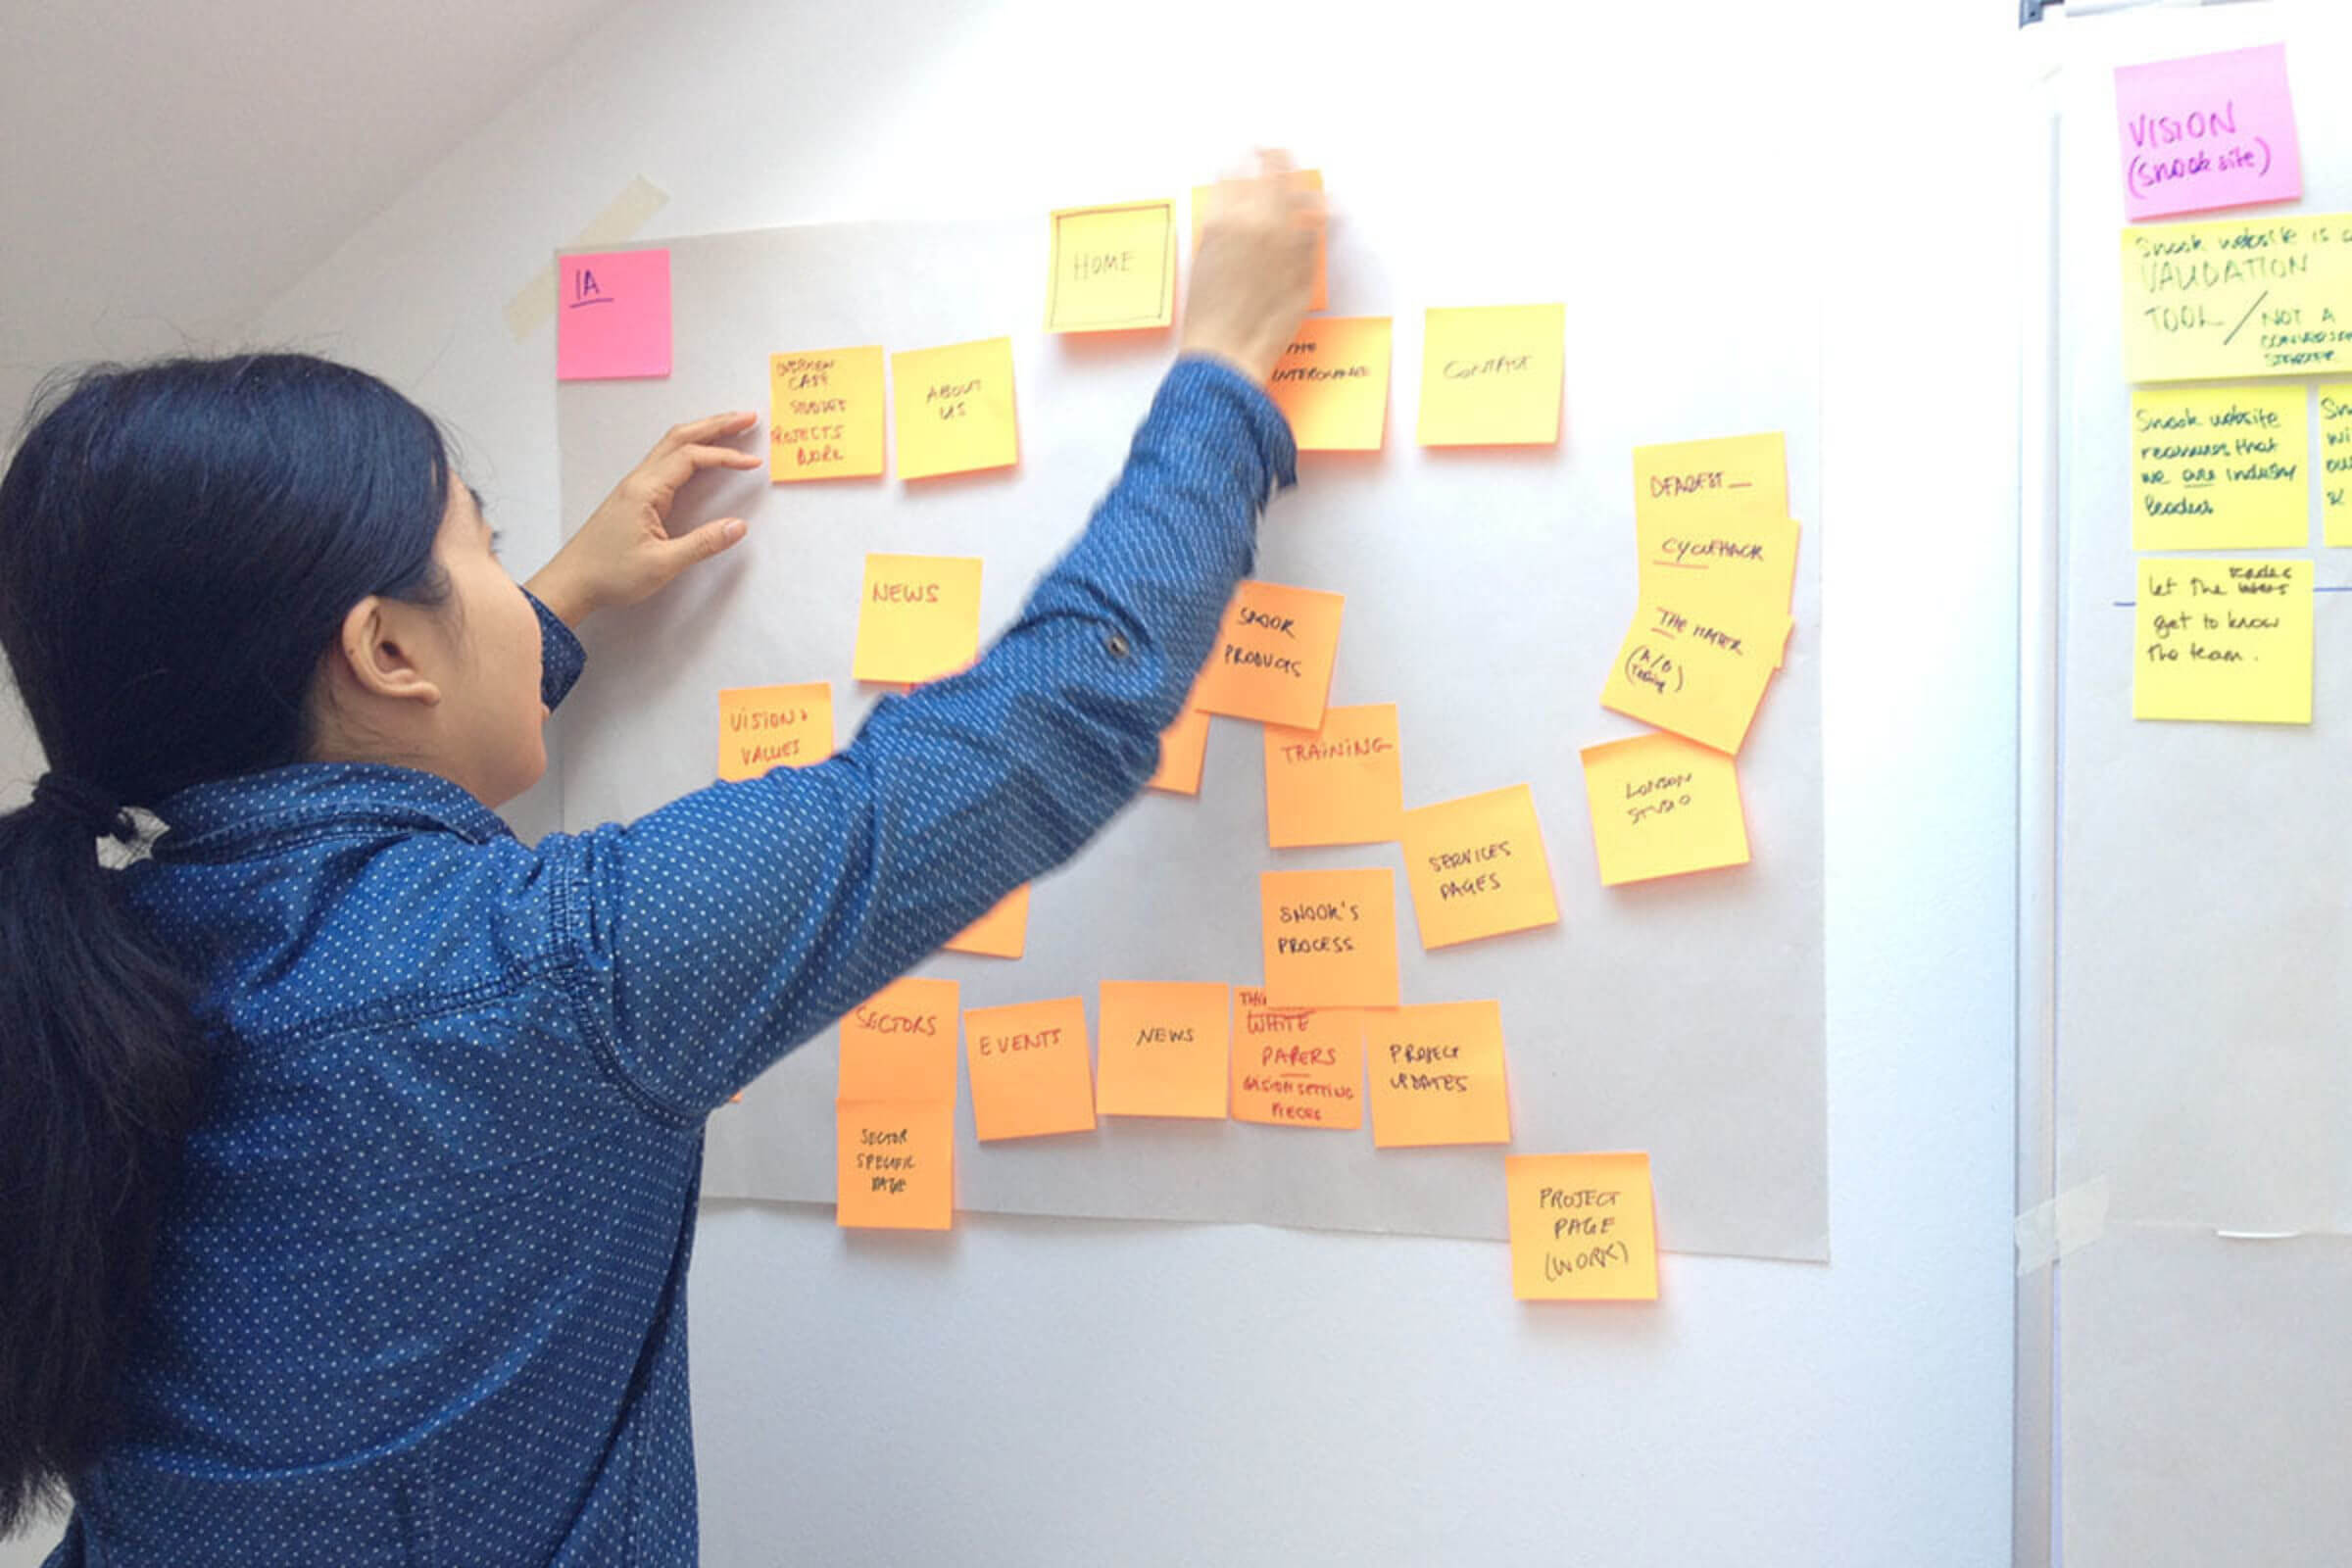 Defining the information architecture